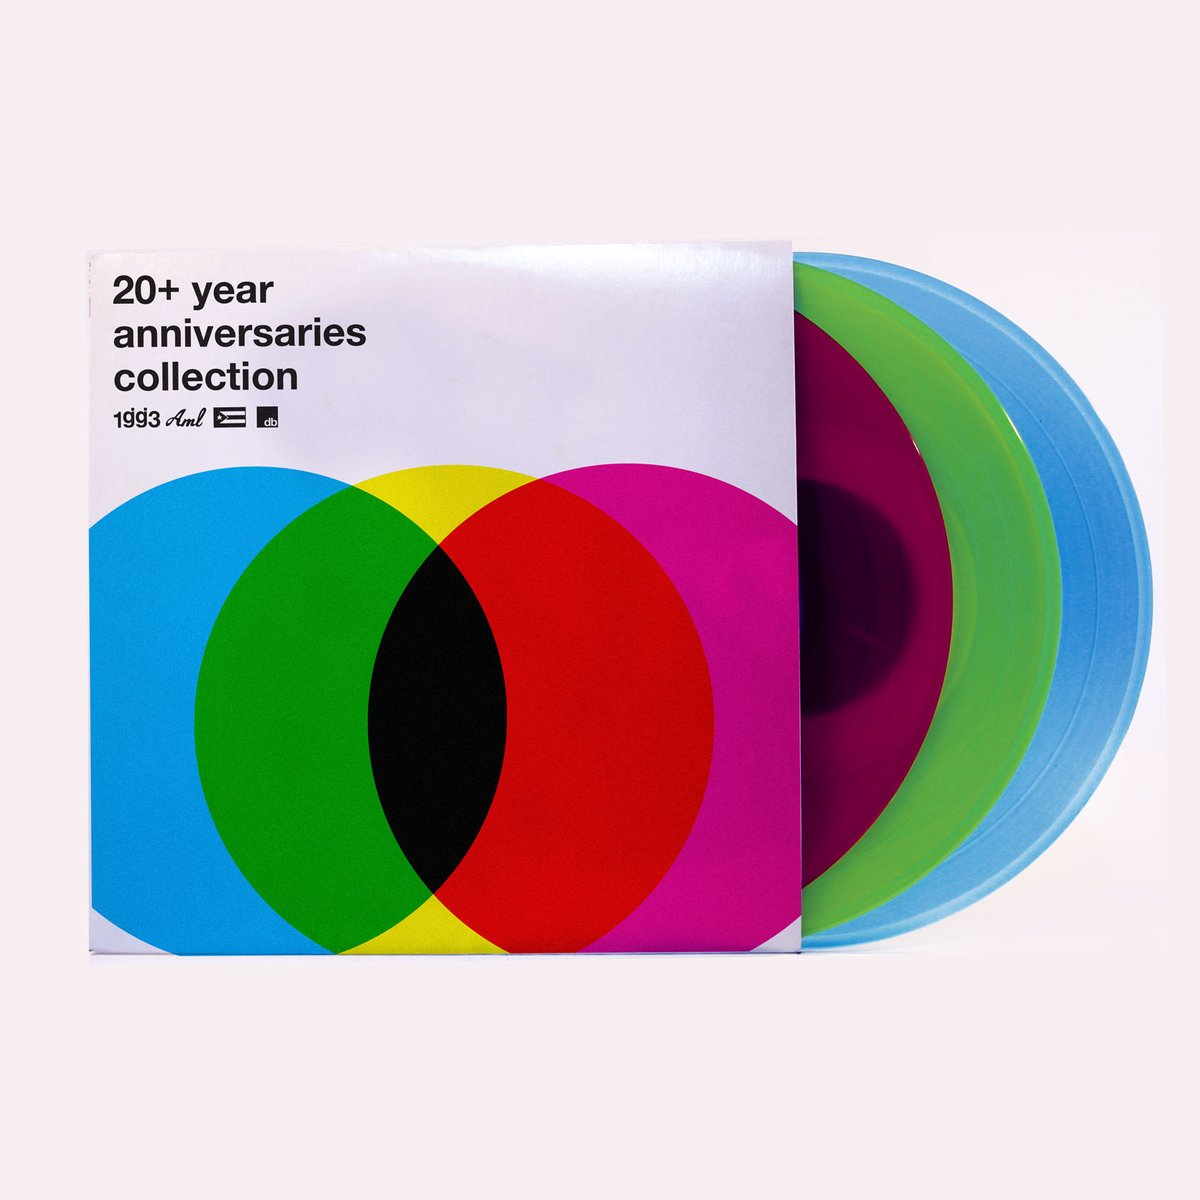 GLASSJAW '20+ ANNIVERSARIES VINYL COLLECTION' LIMITED-EDITION COLORED TRIFOLD 3LP